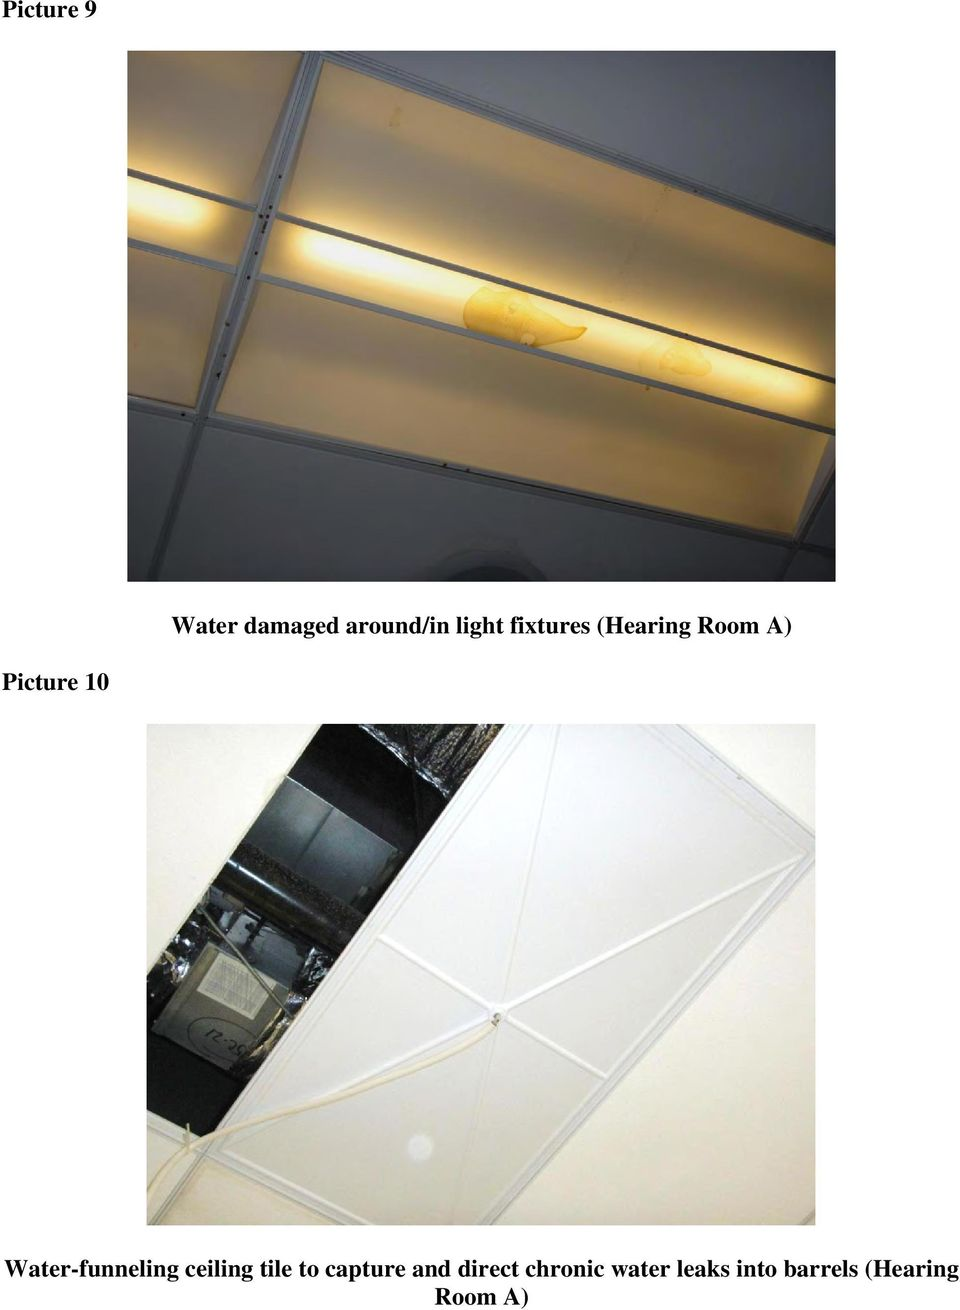 Water-funneling ceiling tile to capture and